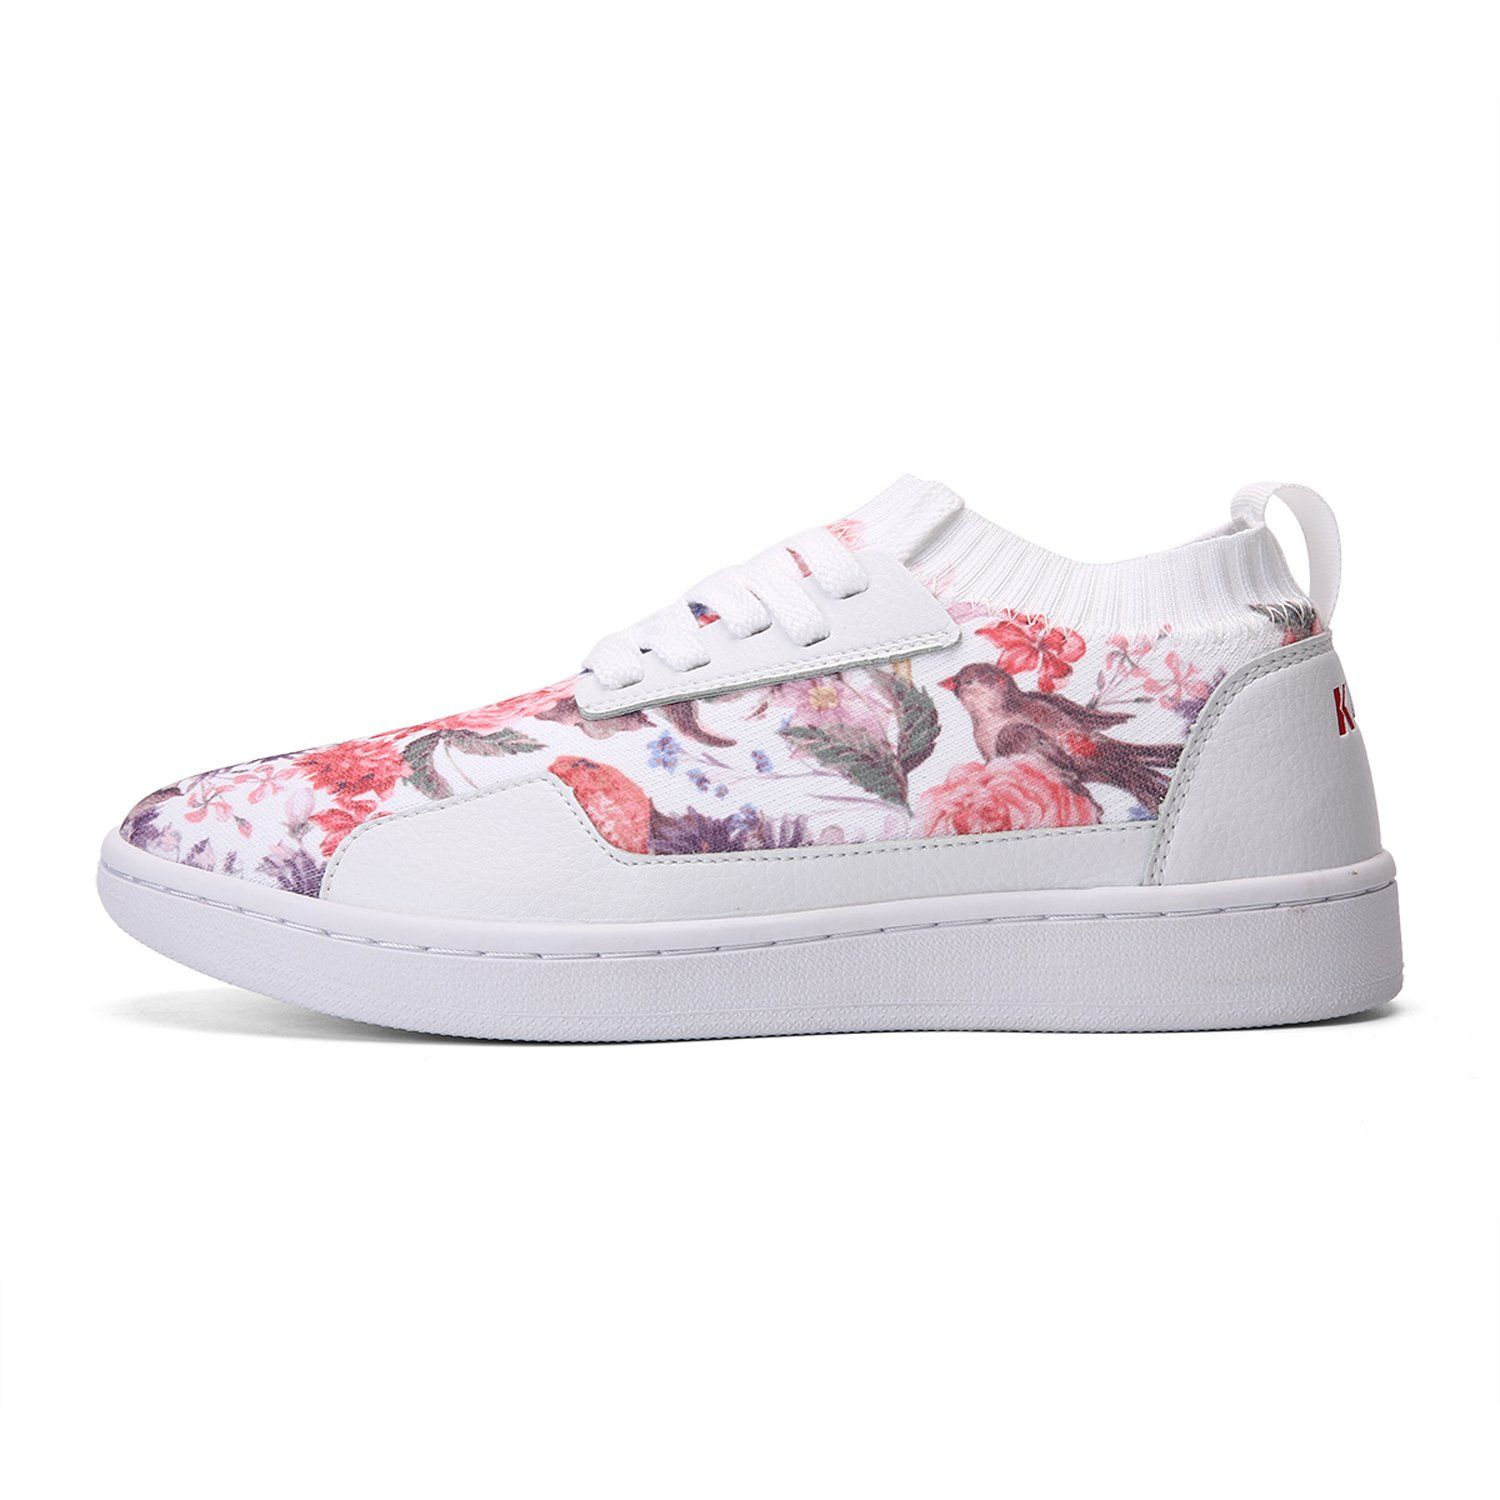 Lace Up Flower Print Freeknit Skateboard Shoes(Summer/Winter) - Soulsfeng